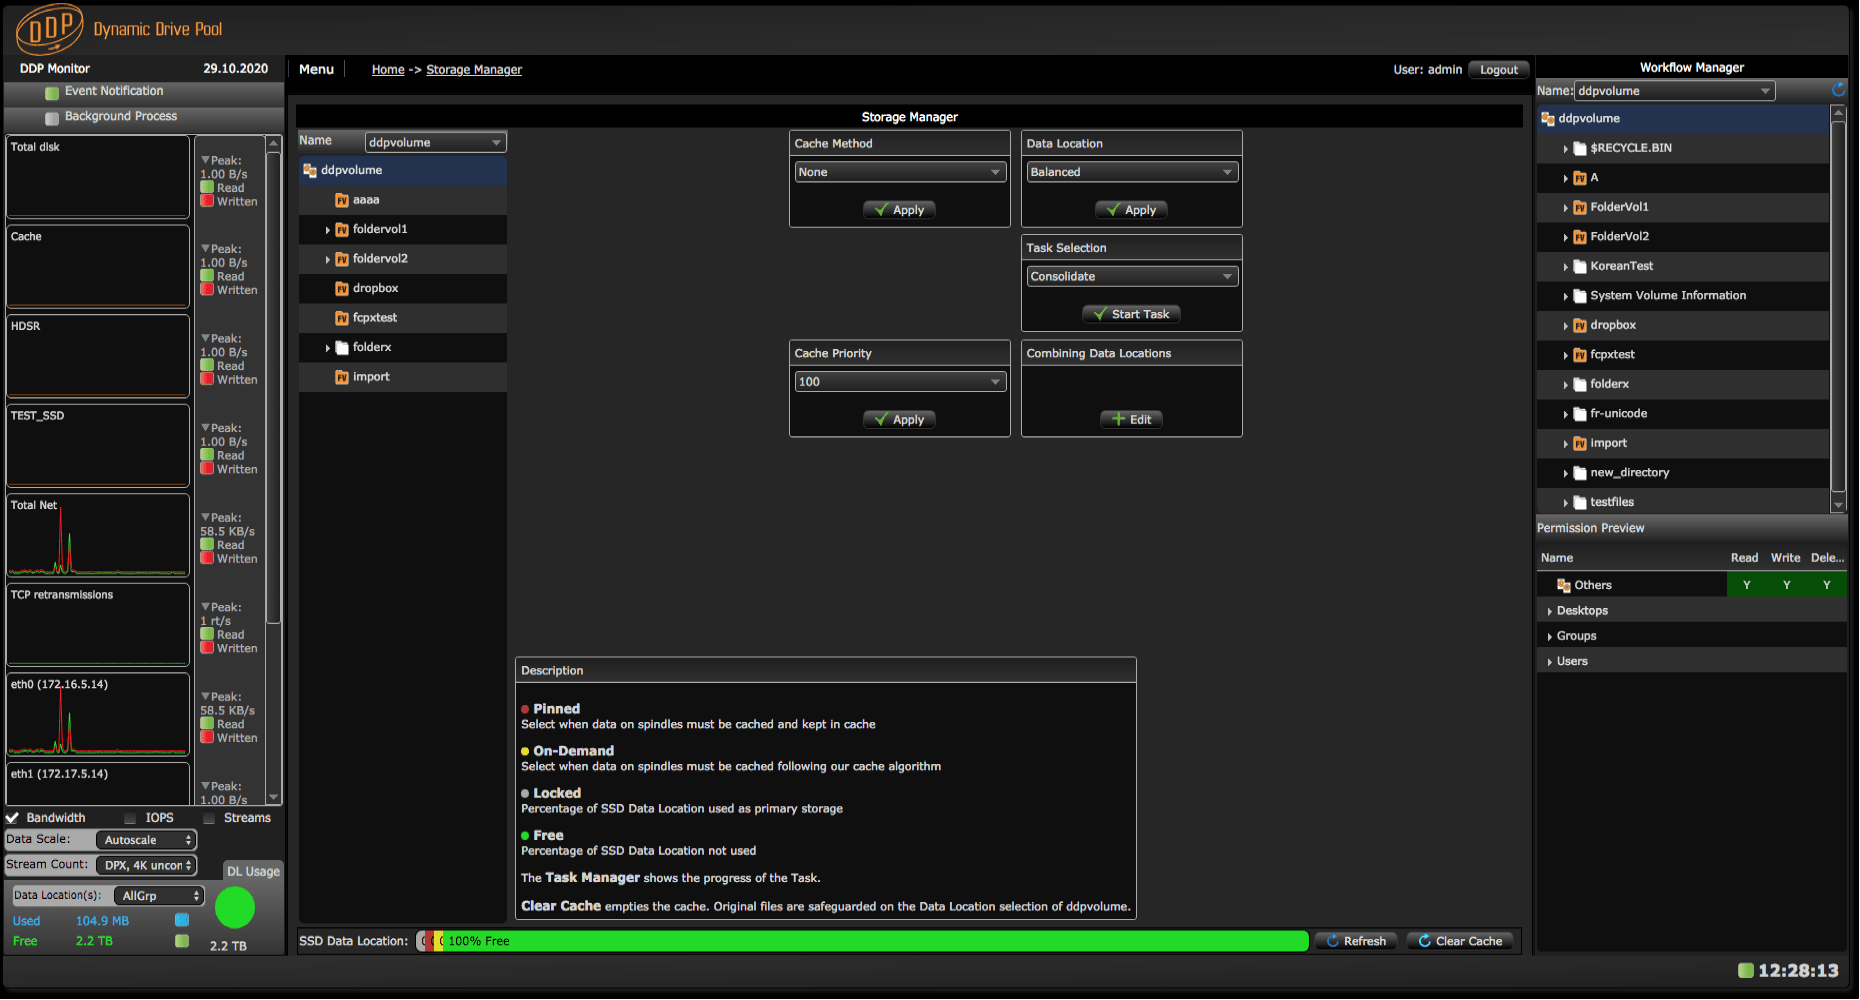 The Balanced Storage Manager screen